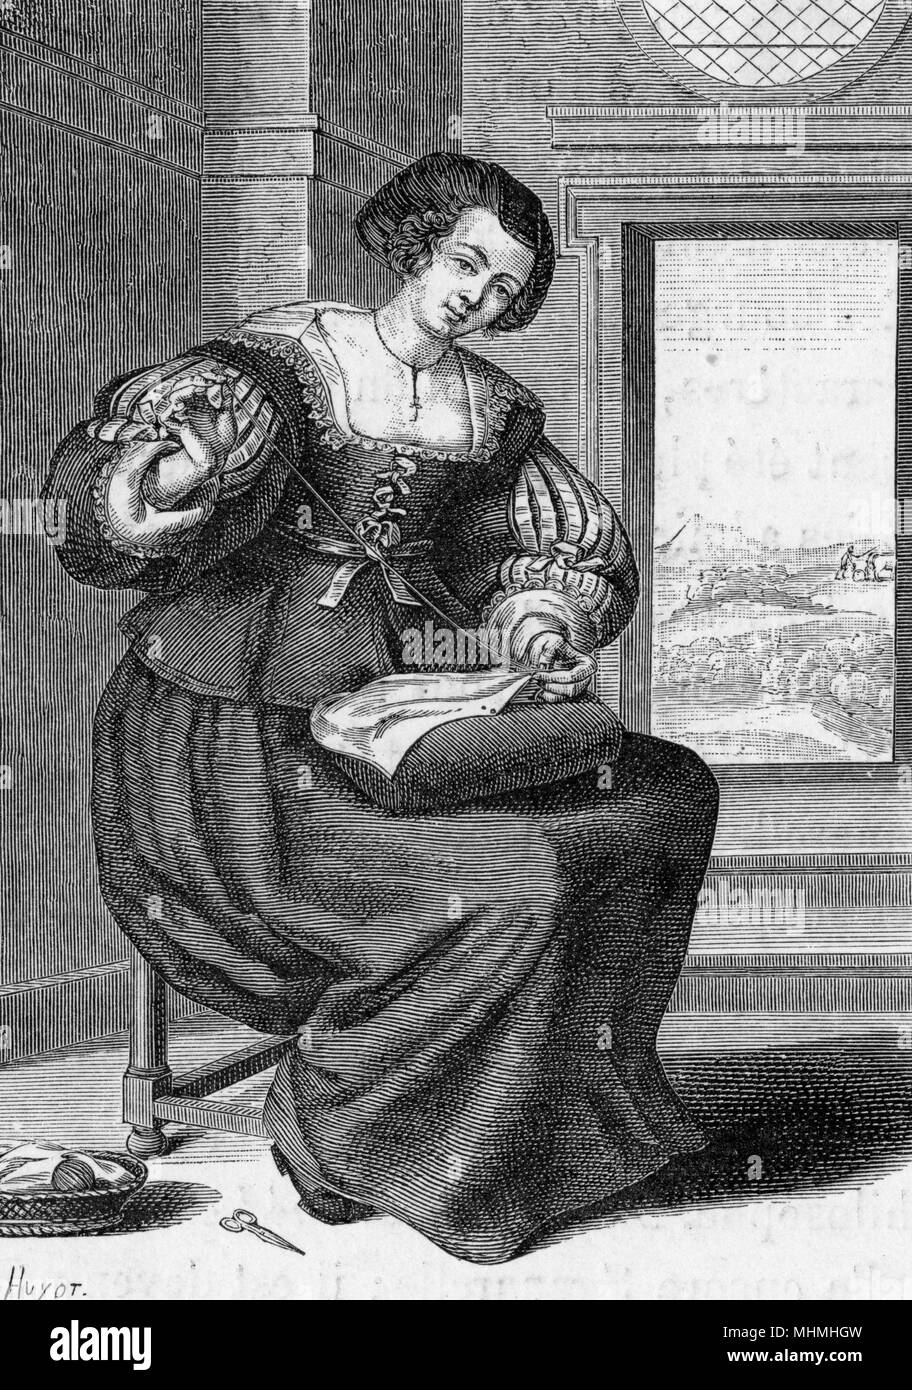 French 'bourgeoise' sewing        Date: 17th century - Stock Image